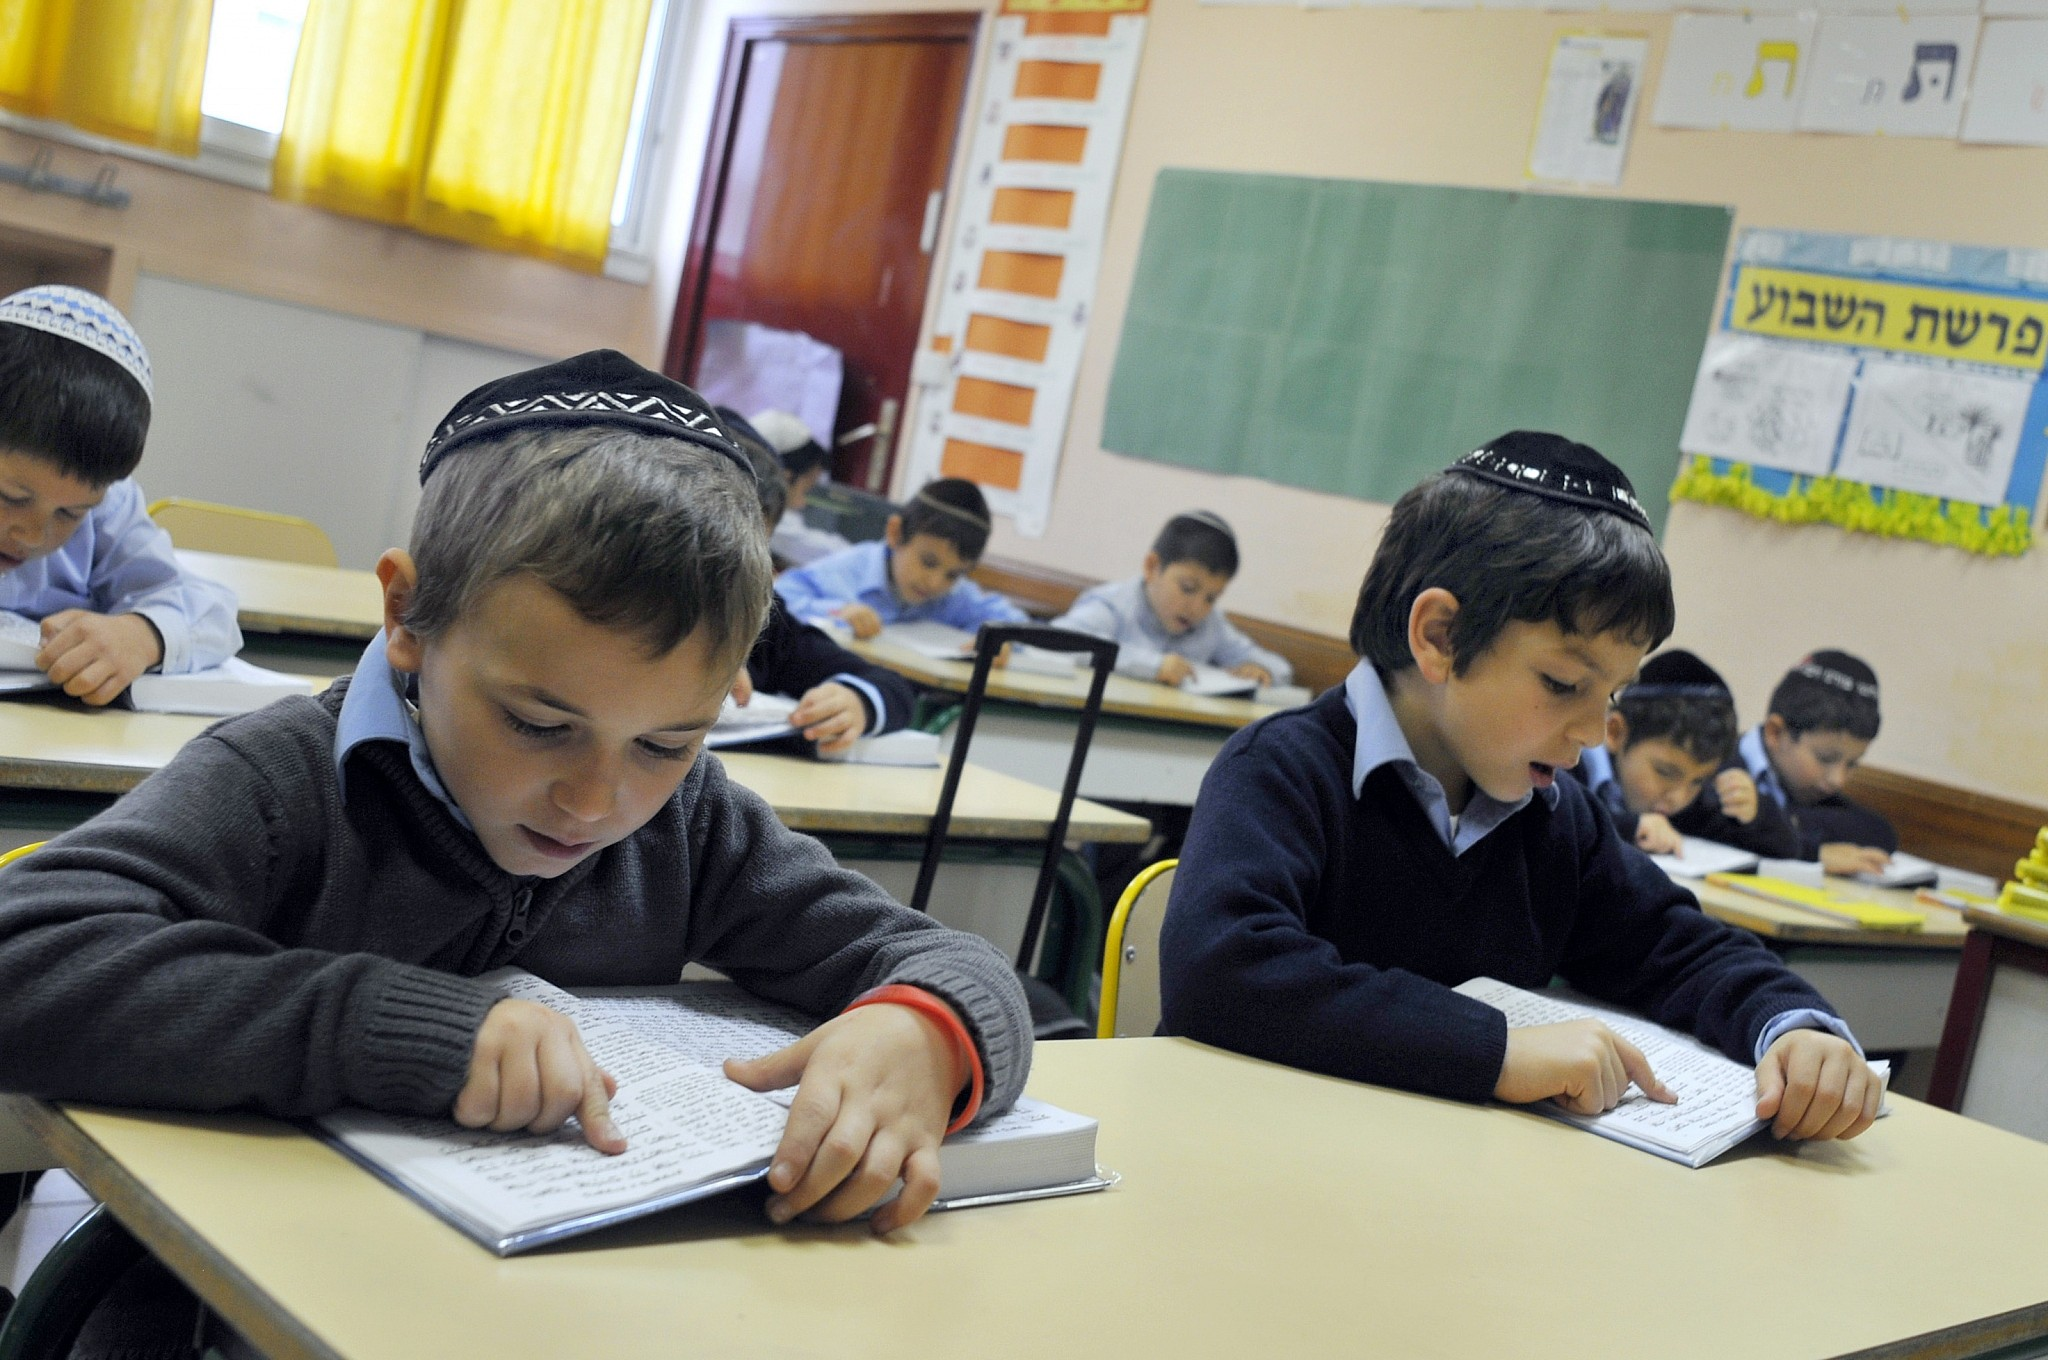 French Public Schools Reminded To Enforce Kippah Headscarf Ban